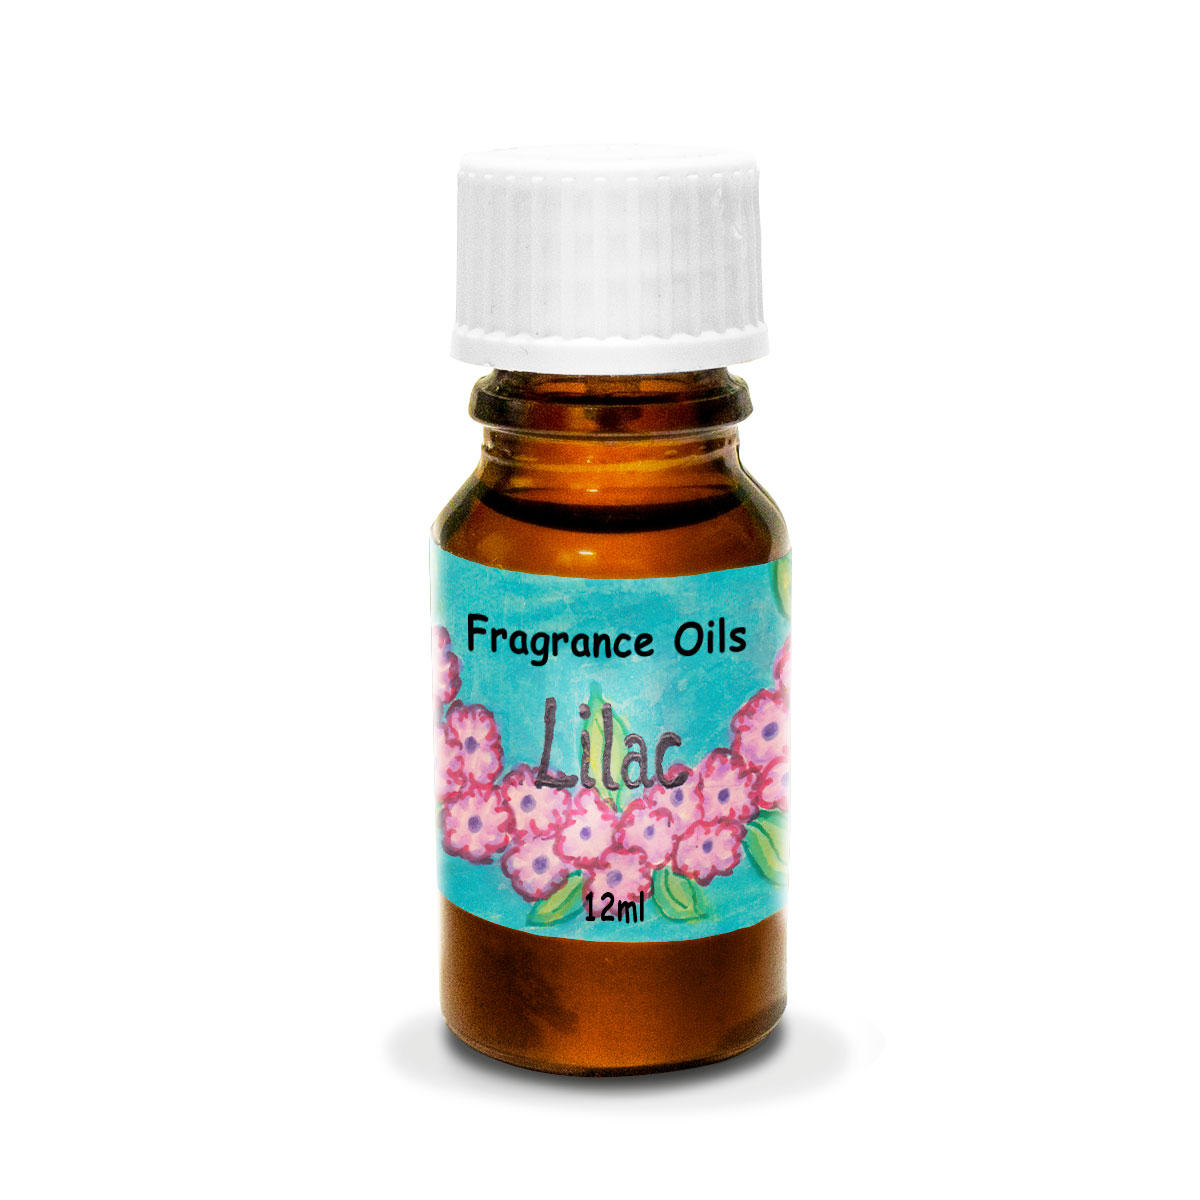 Lilac - Fragrance Oil